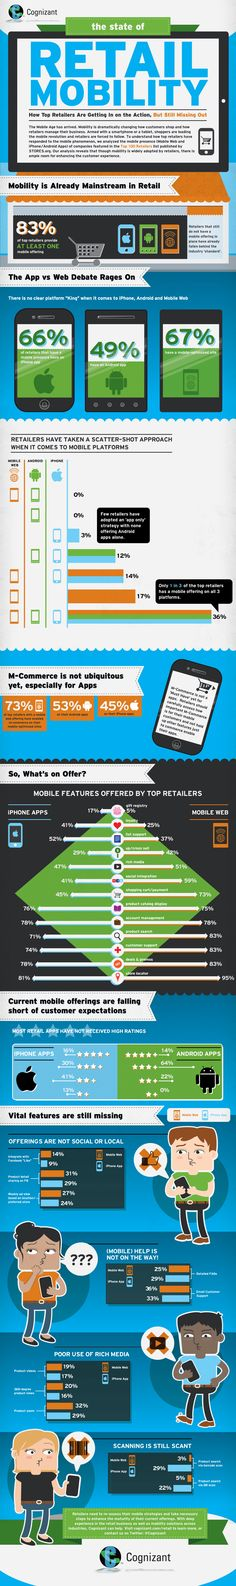 The state of retail mobility #eCommerce #Mobile... Repinned by @jagtomas de #ixu